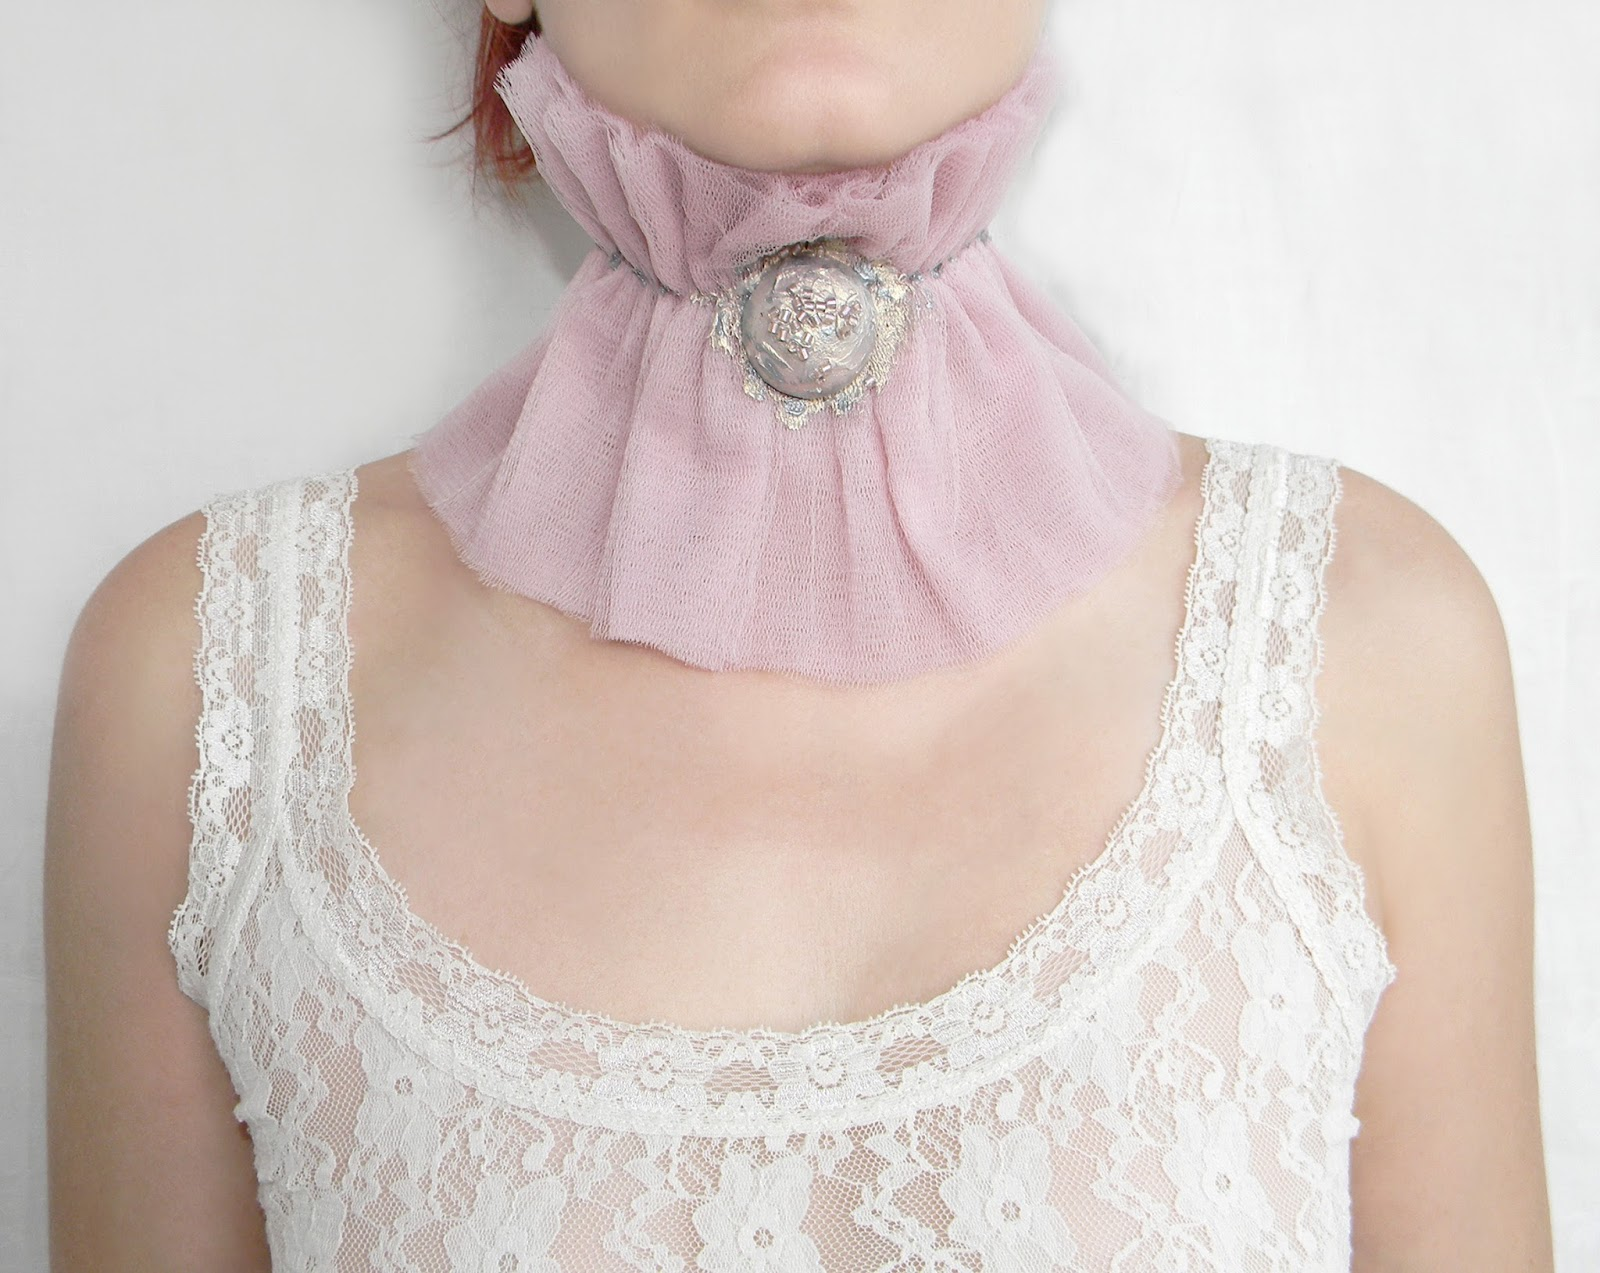 Ruffled Edwardian Victorian Collar Neck Corset of Tulle Layers in Dusty Lilac Pink